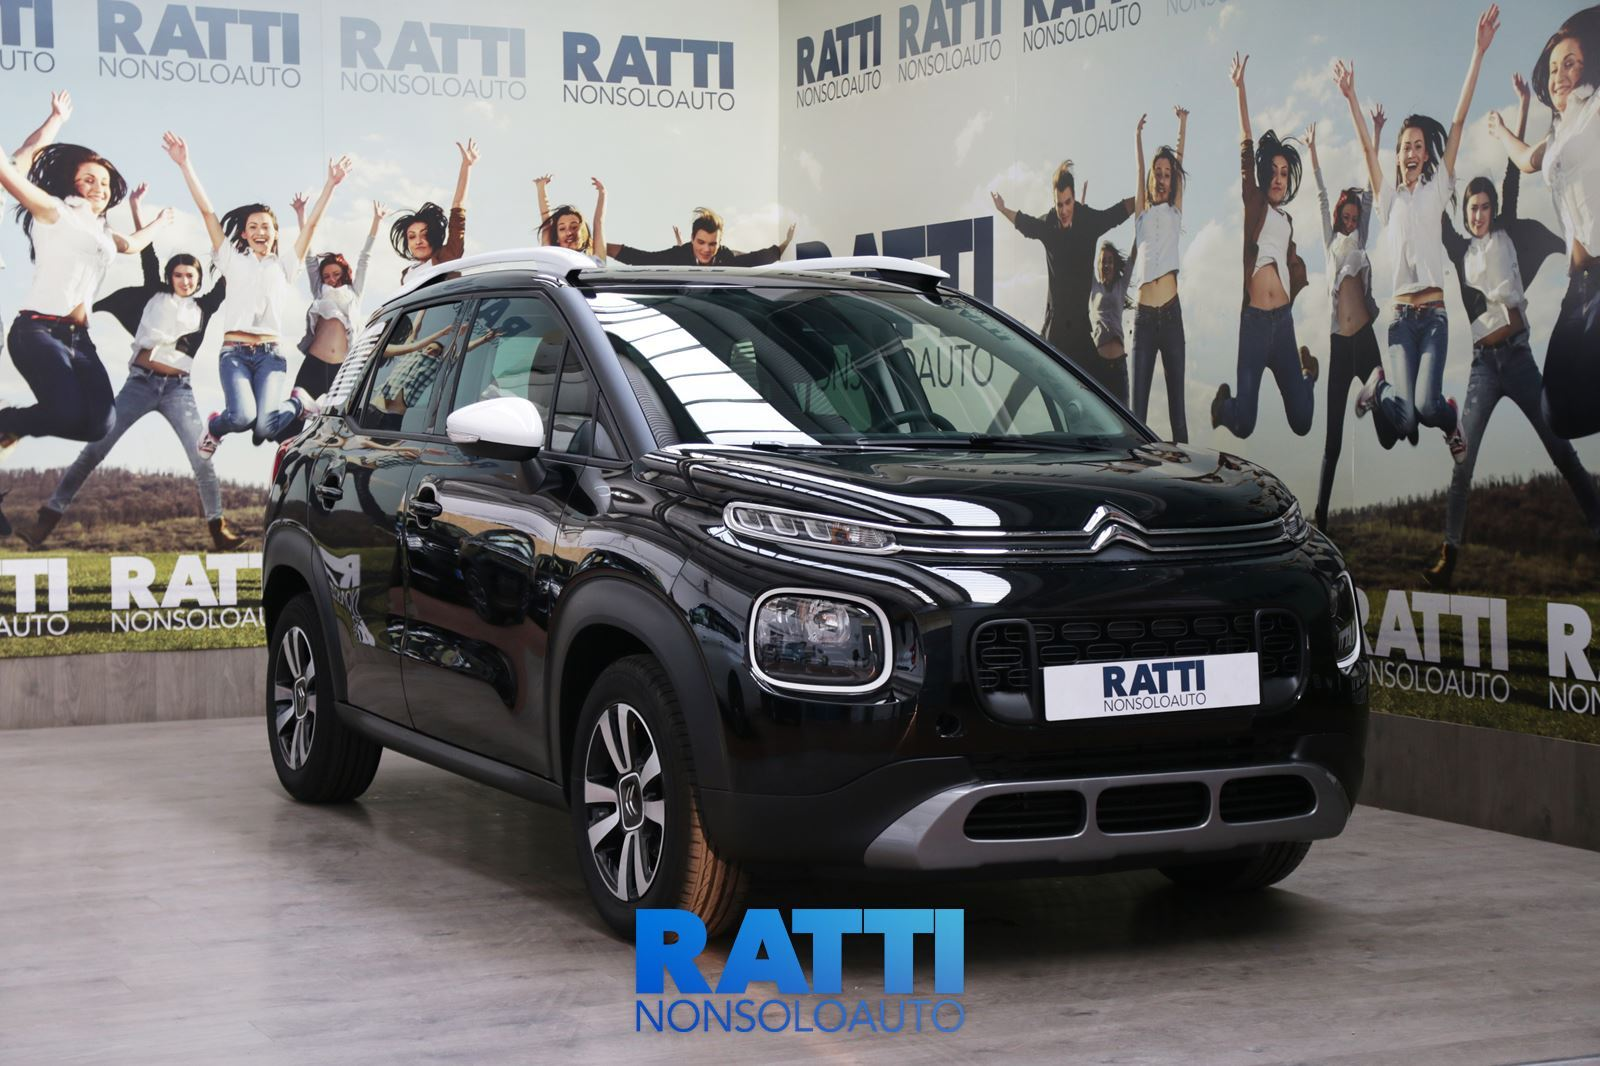 CITROEN C3 Aircross BlueHDi 1.6 120CV EAT6 Feel Ink Black  cambio Automatico Diesel Km 0 station wagon 5 porte 5 posti EURO 6